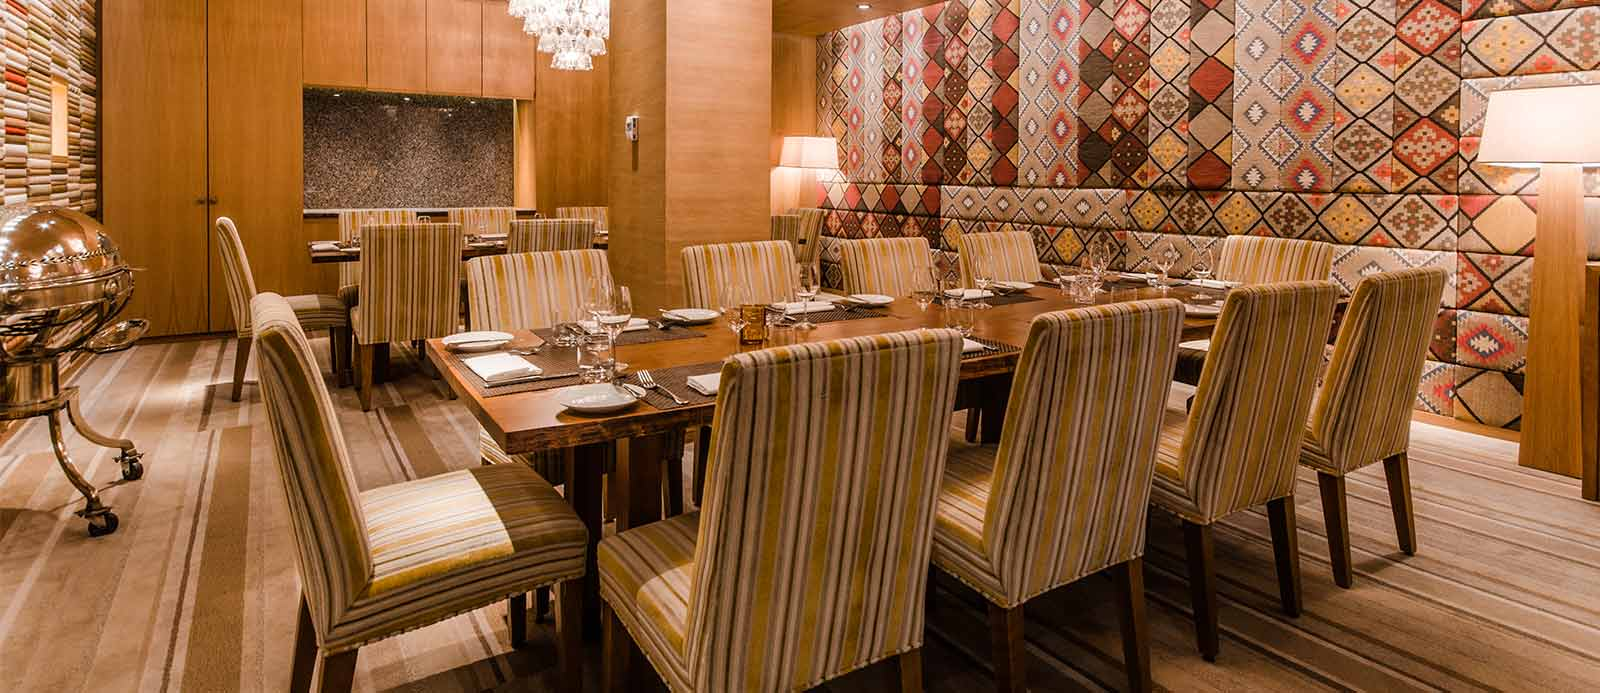 daniel boulud chef and restaurateur private dining rooms - Private Dining Room Boston